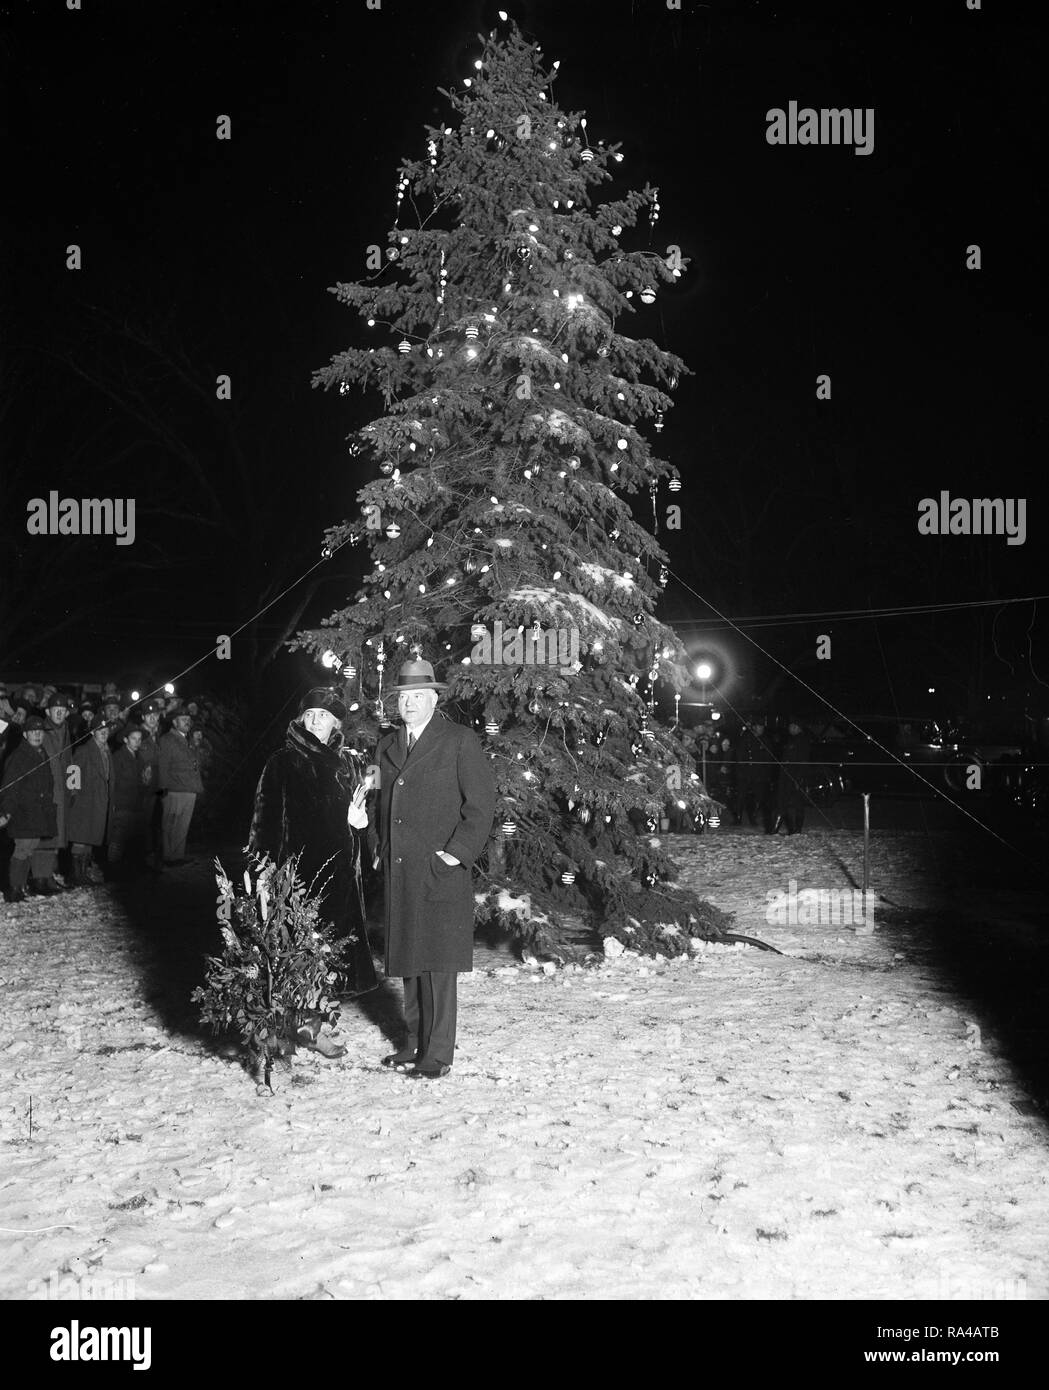 President Hoover lights Nation's Capital community Xmas tree. President Hoover pressed the button that set the community Christmas tree of the National Capital ablaze with varied colored lights tonight, Christmas Eve, December 24. - Stock Image